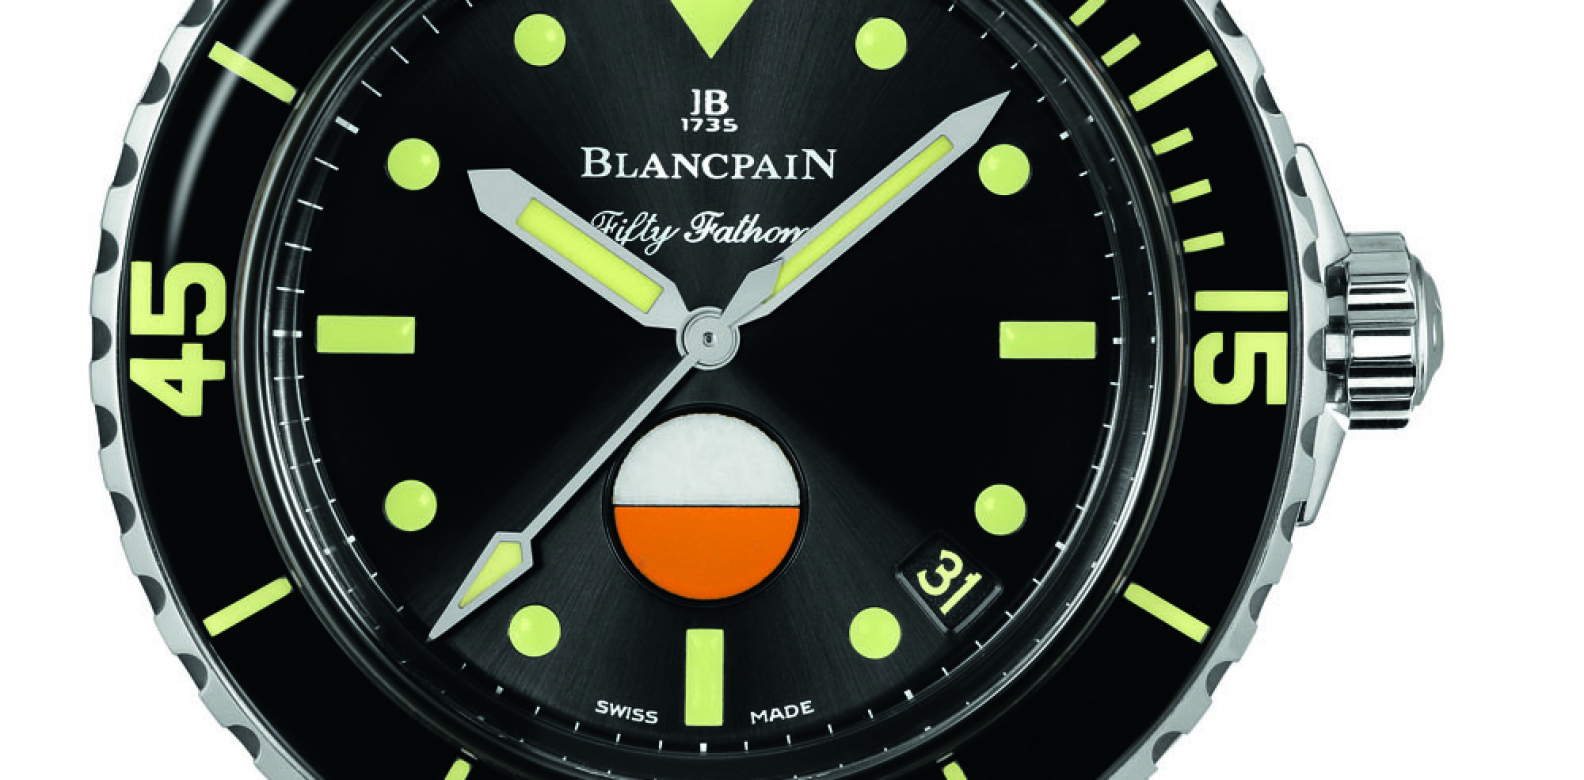 This was one of the most popular releases at Baselworld this year. With it, Blancpain sets a fine example of doing tribute watches right. (Photo: Courtesy of Blancpain)